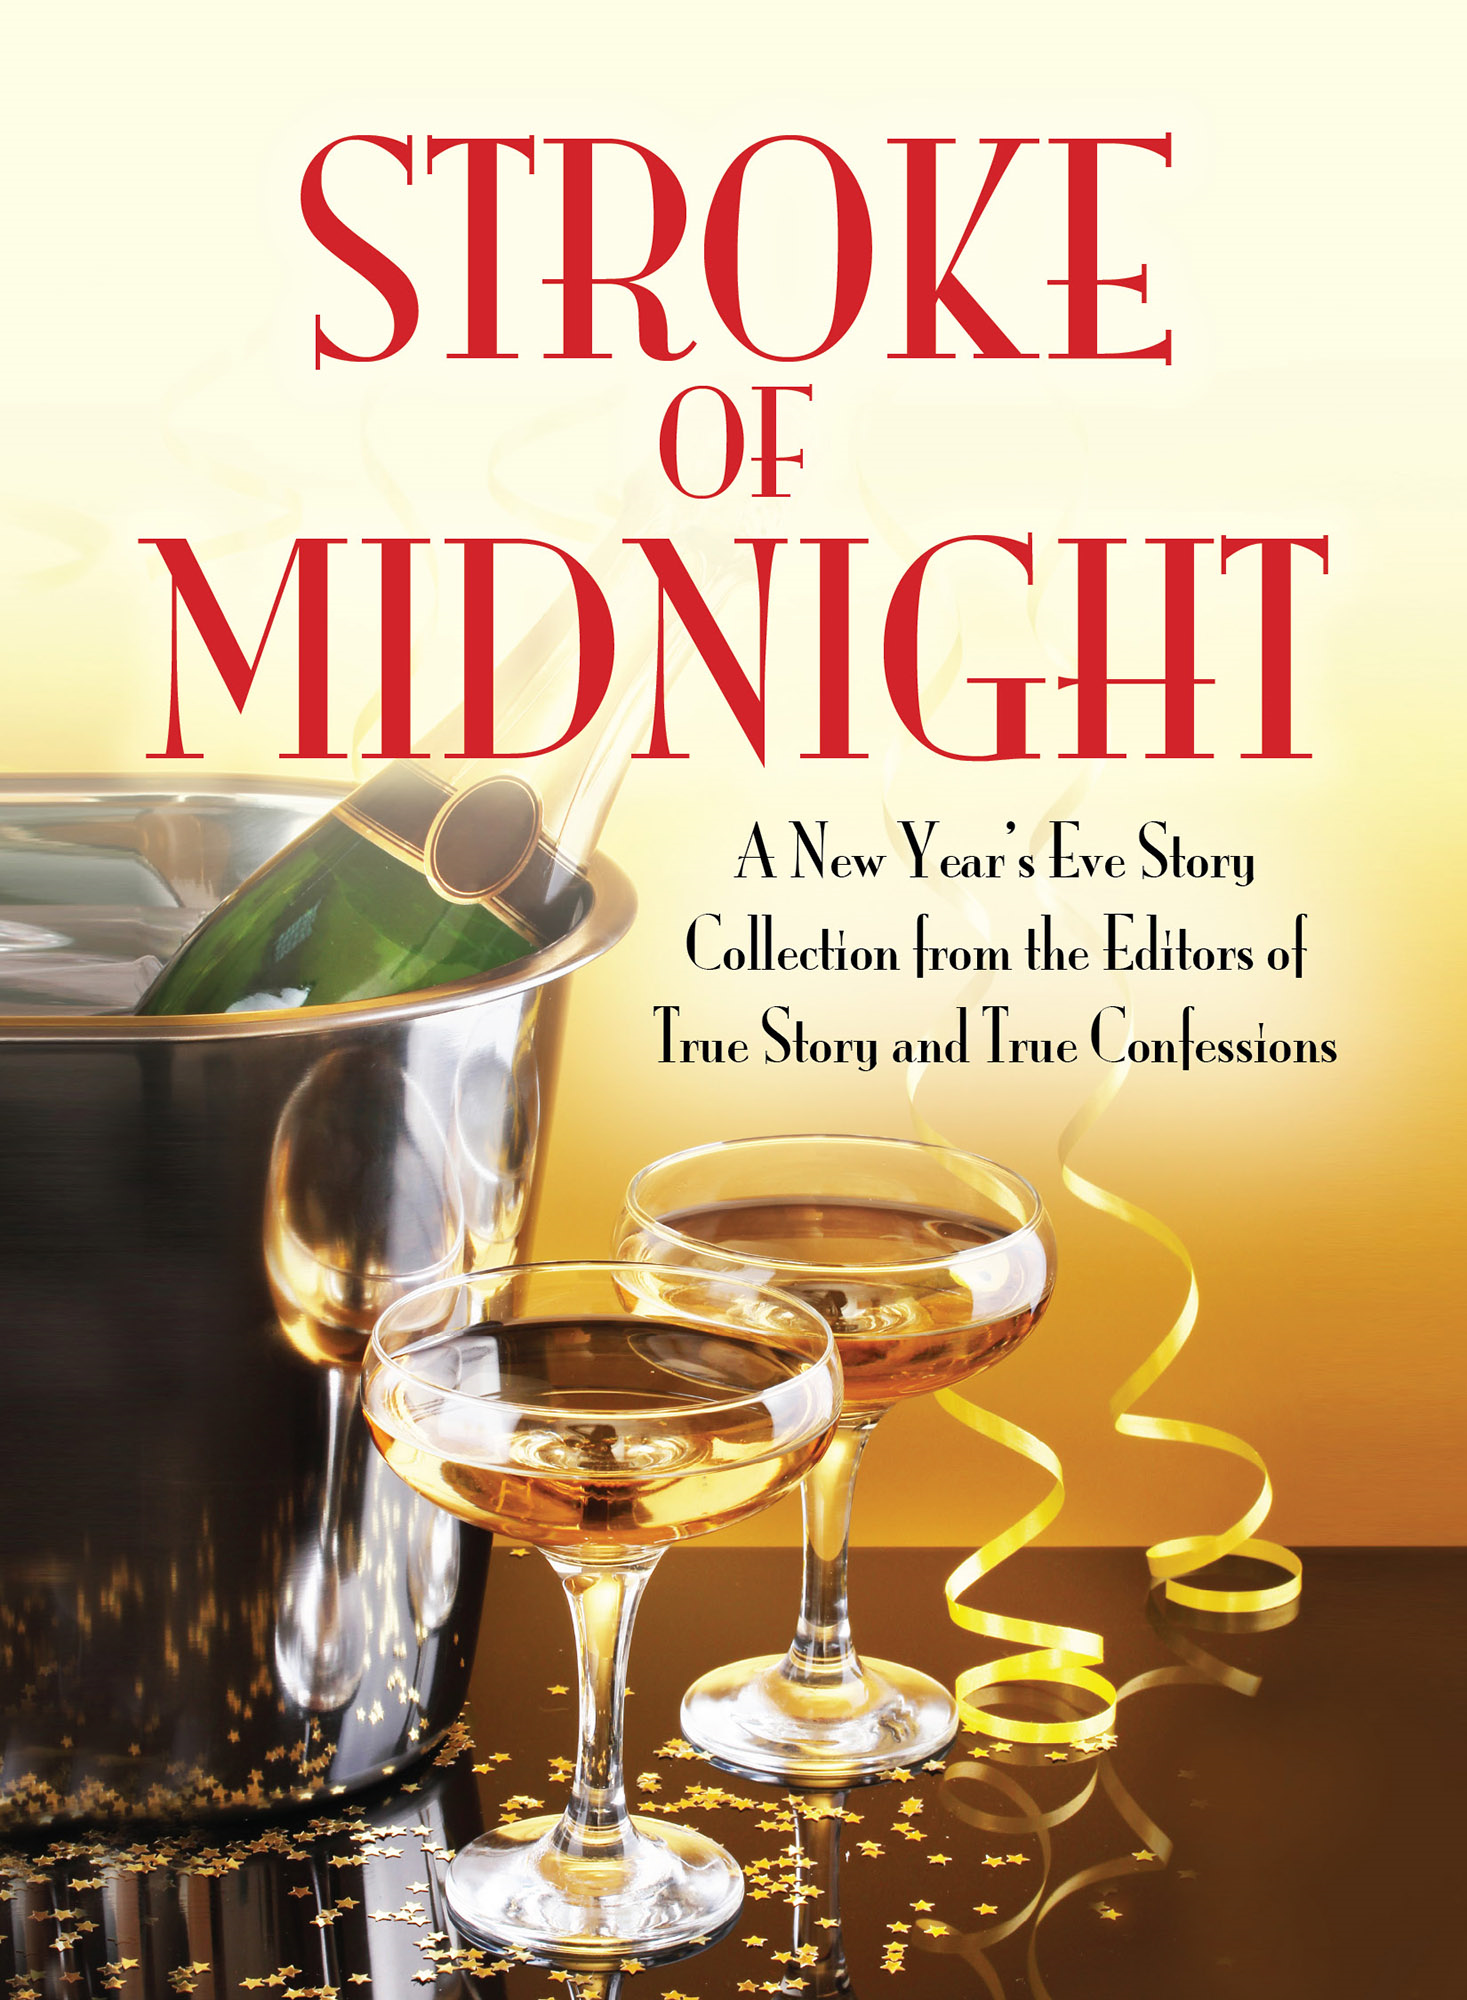 The Editors Of True Story And True Confessions - Stroke of Midnight: A New Year's Eve Storty Collection